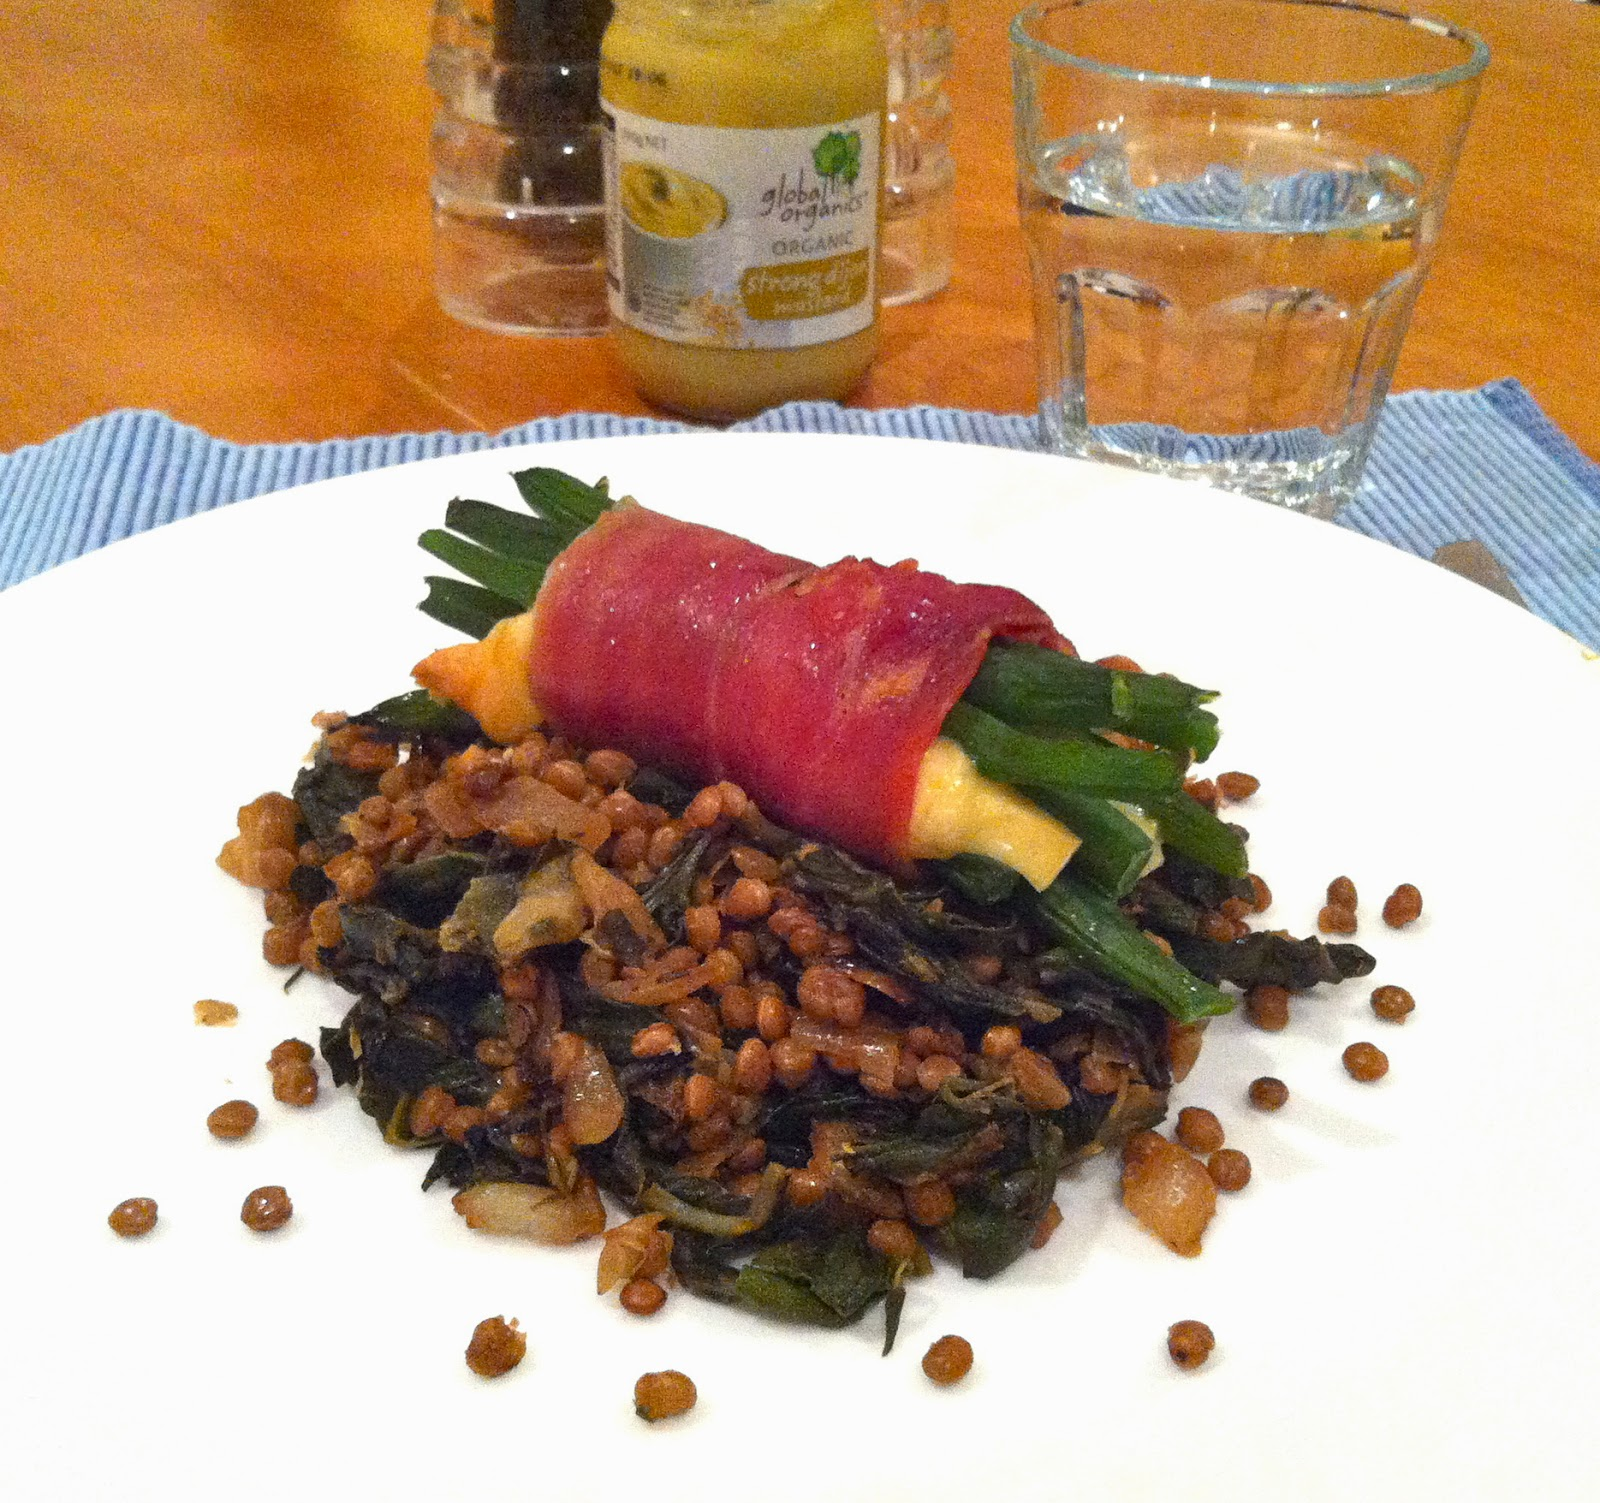 Prosciutto-wrapped green beans & pecorino over lentils with swiss chard & mustard